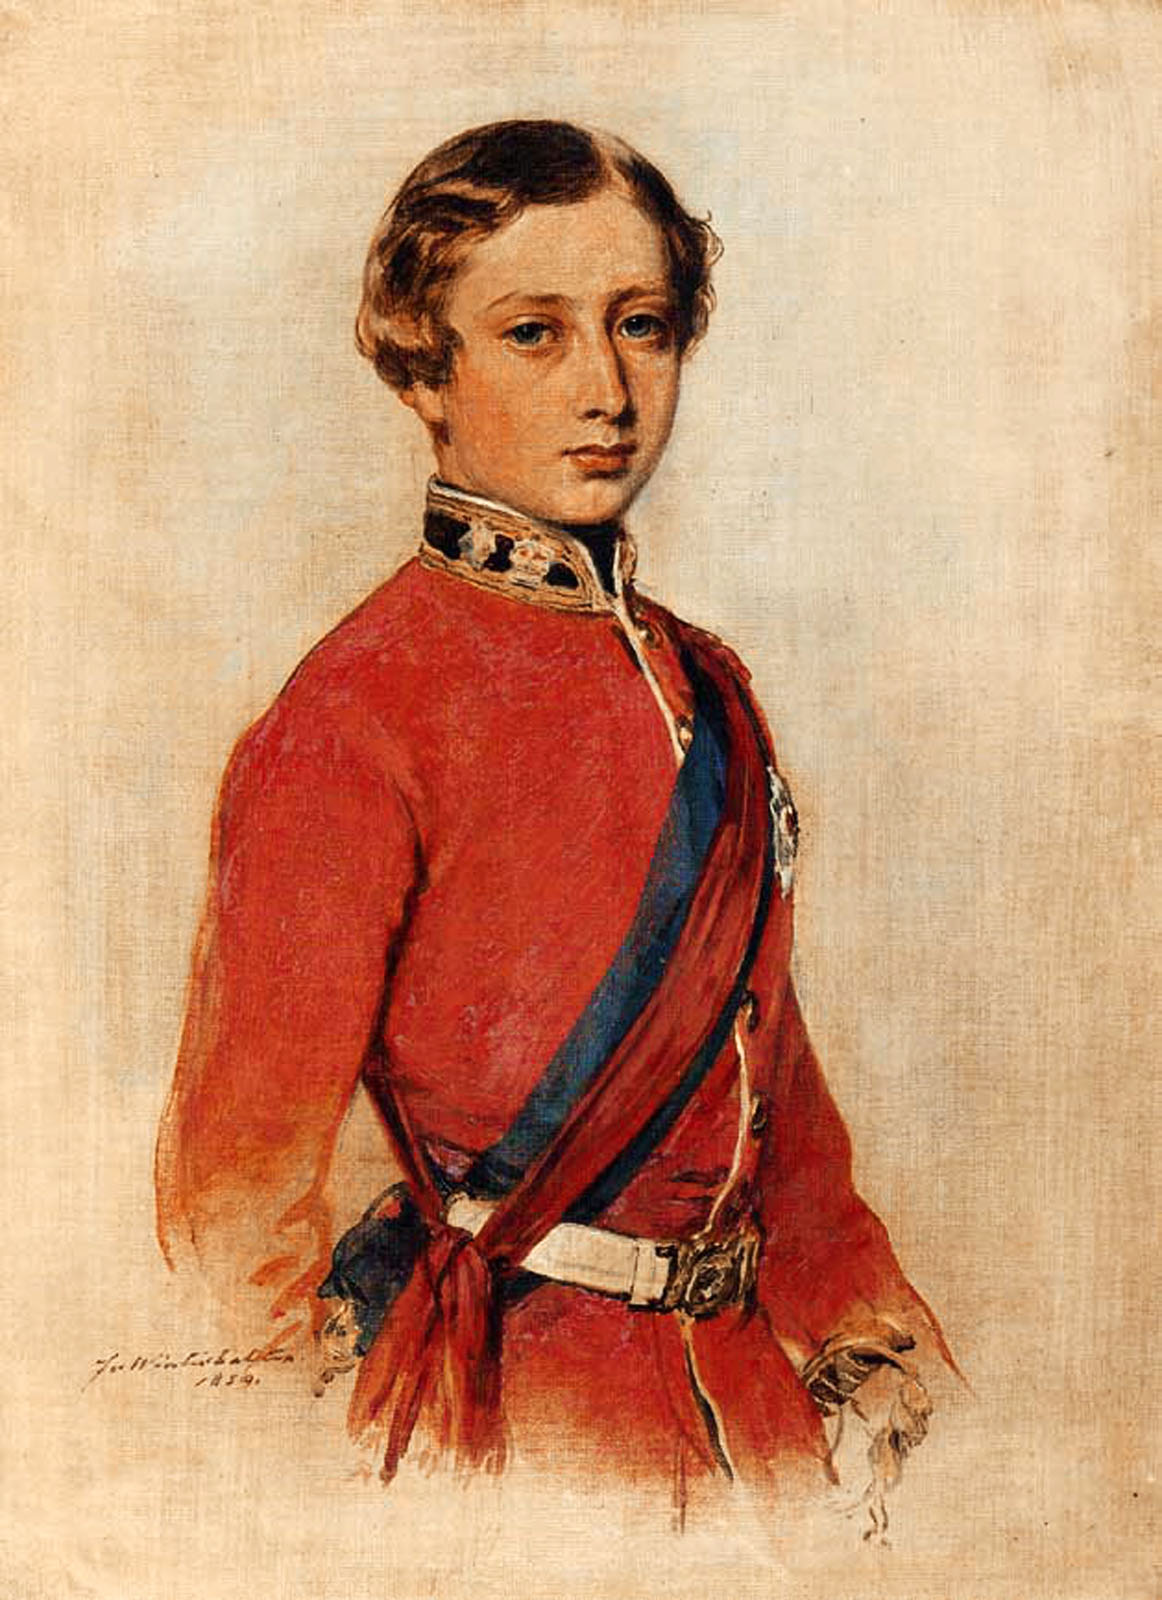 Franz Xavier Winterhalter (1805-1873) Albert Edward, Prince of Wales Oil on canvas, 1859 Private collection